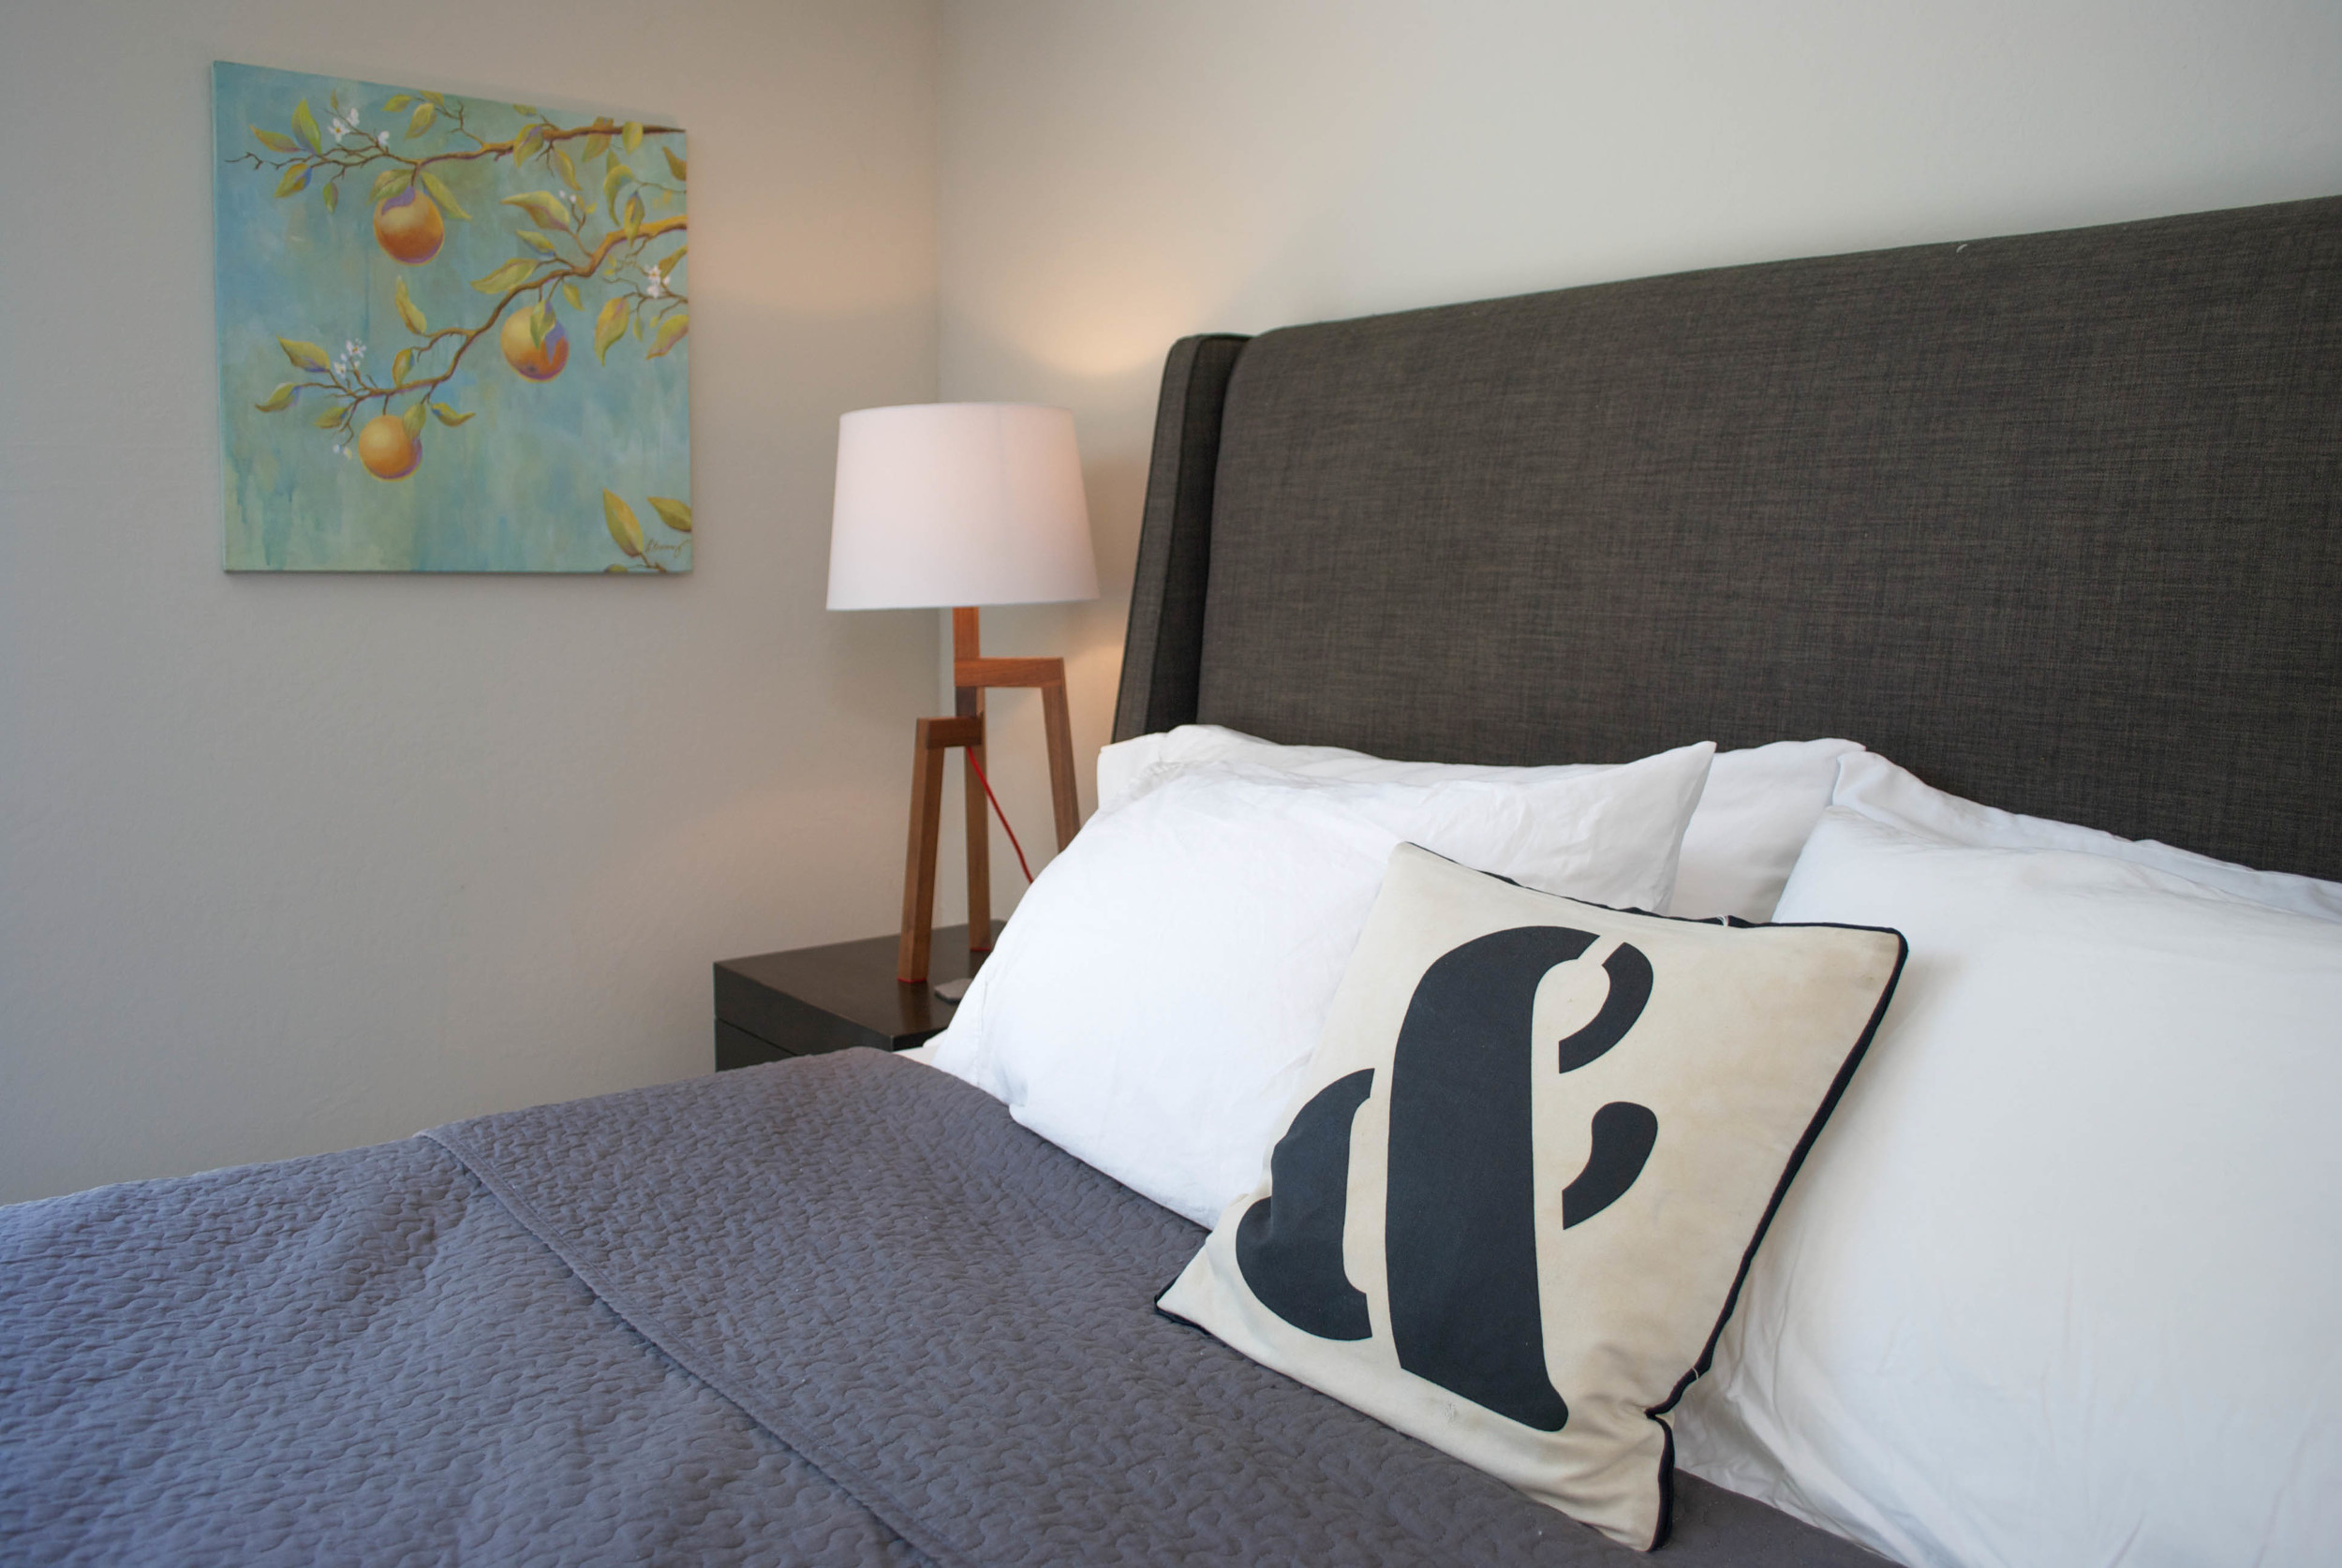 One of Laura's paintings adds a splash of colour to the neautral palette.